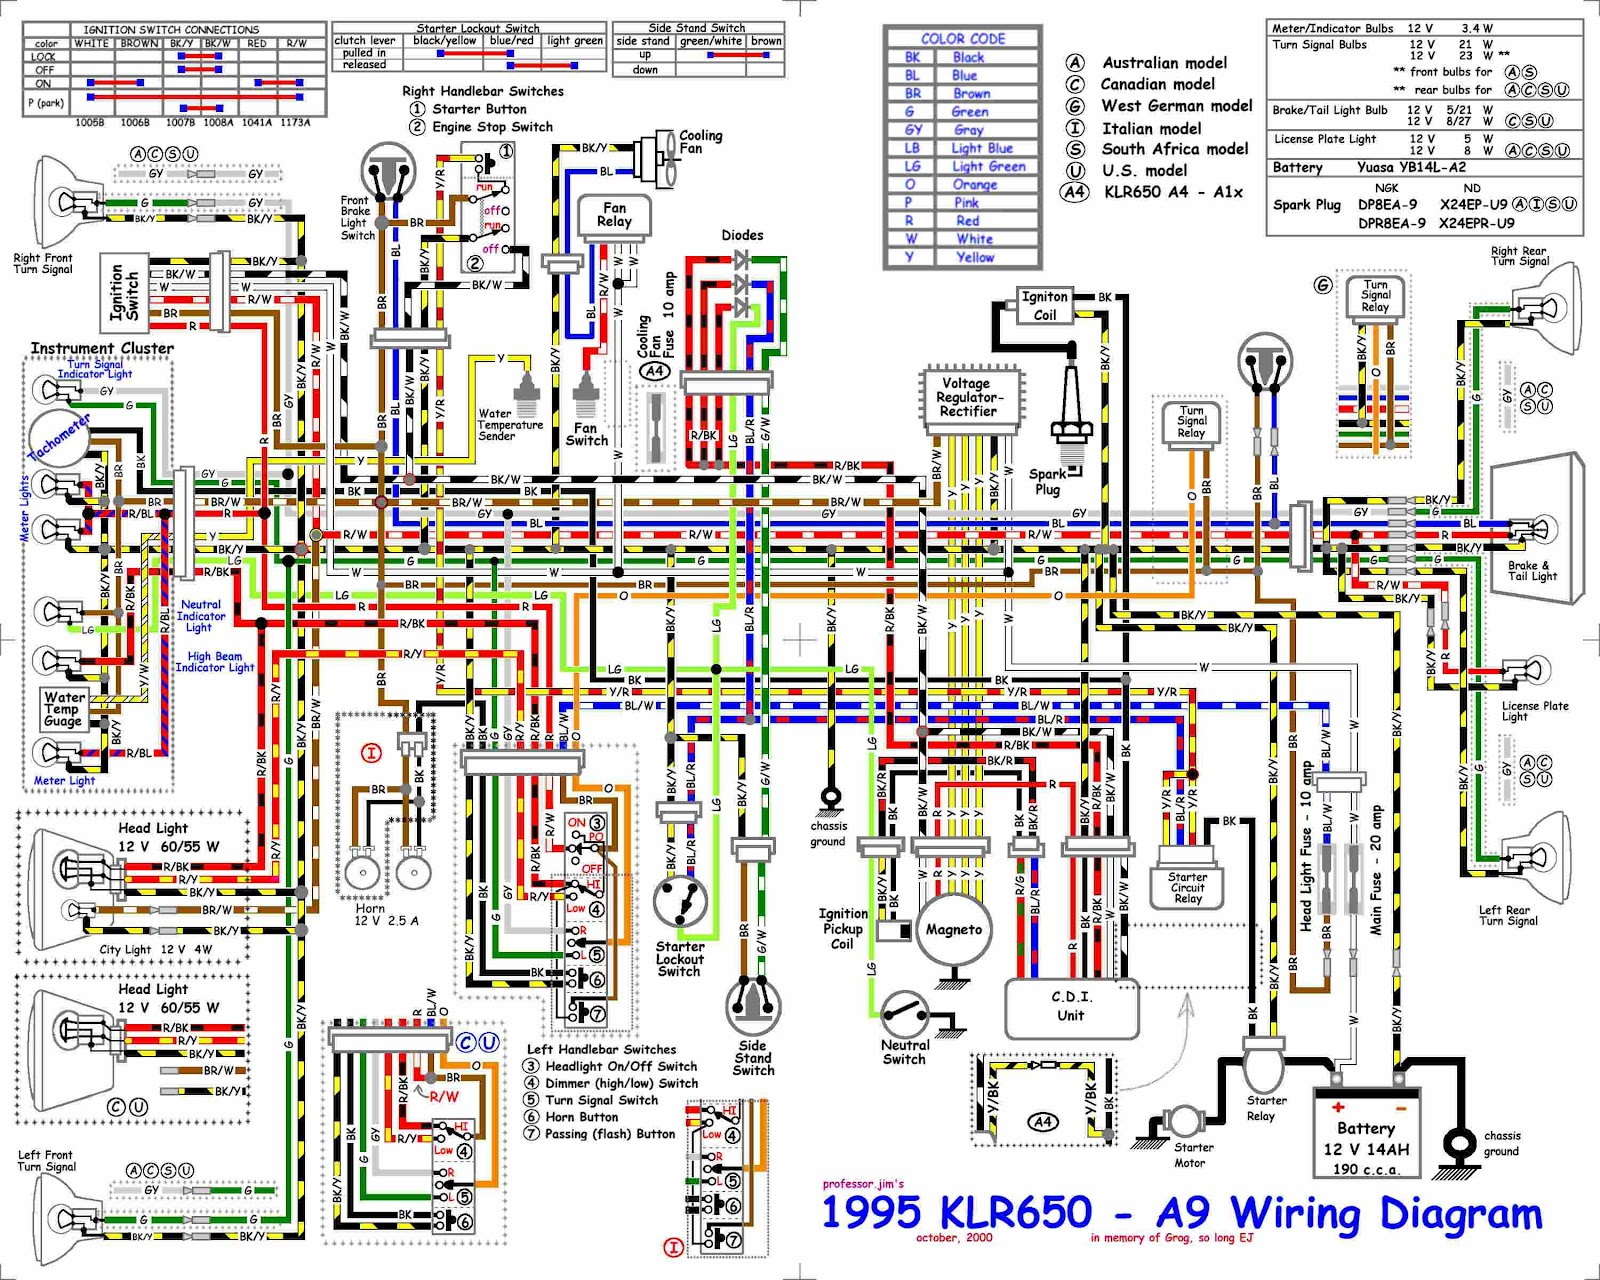 1995 Motorcycle Electrical Wiring Diagram All About Diagrams